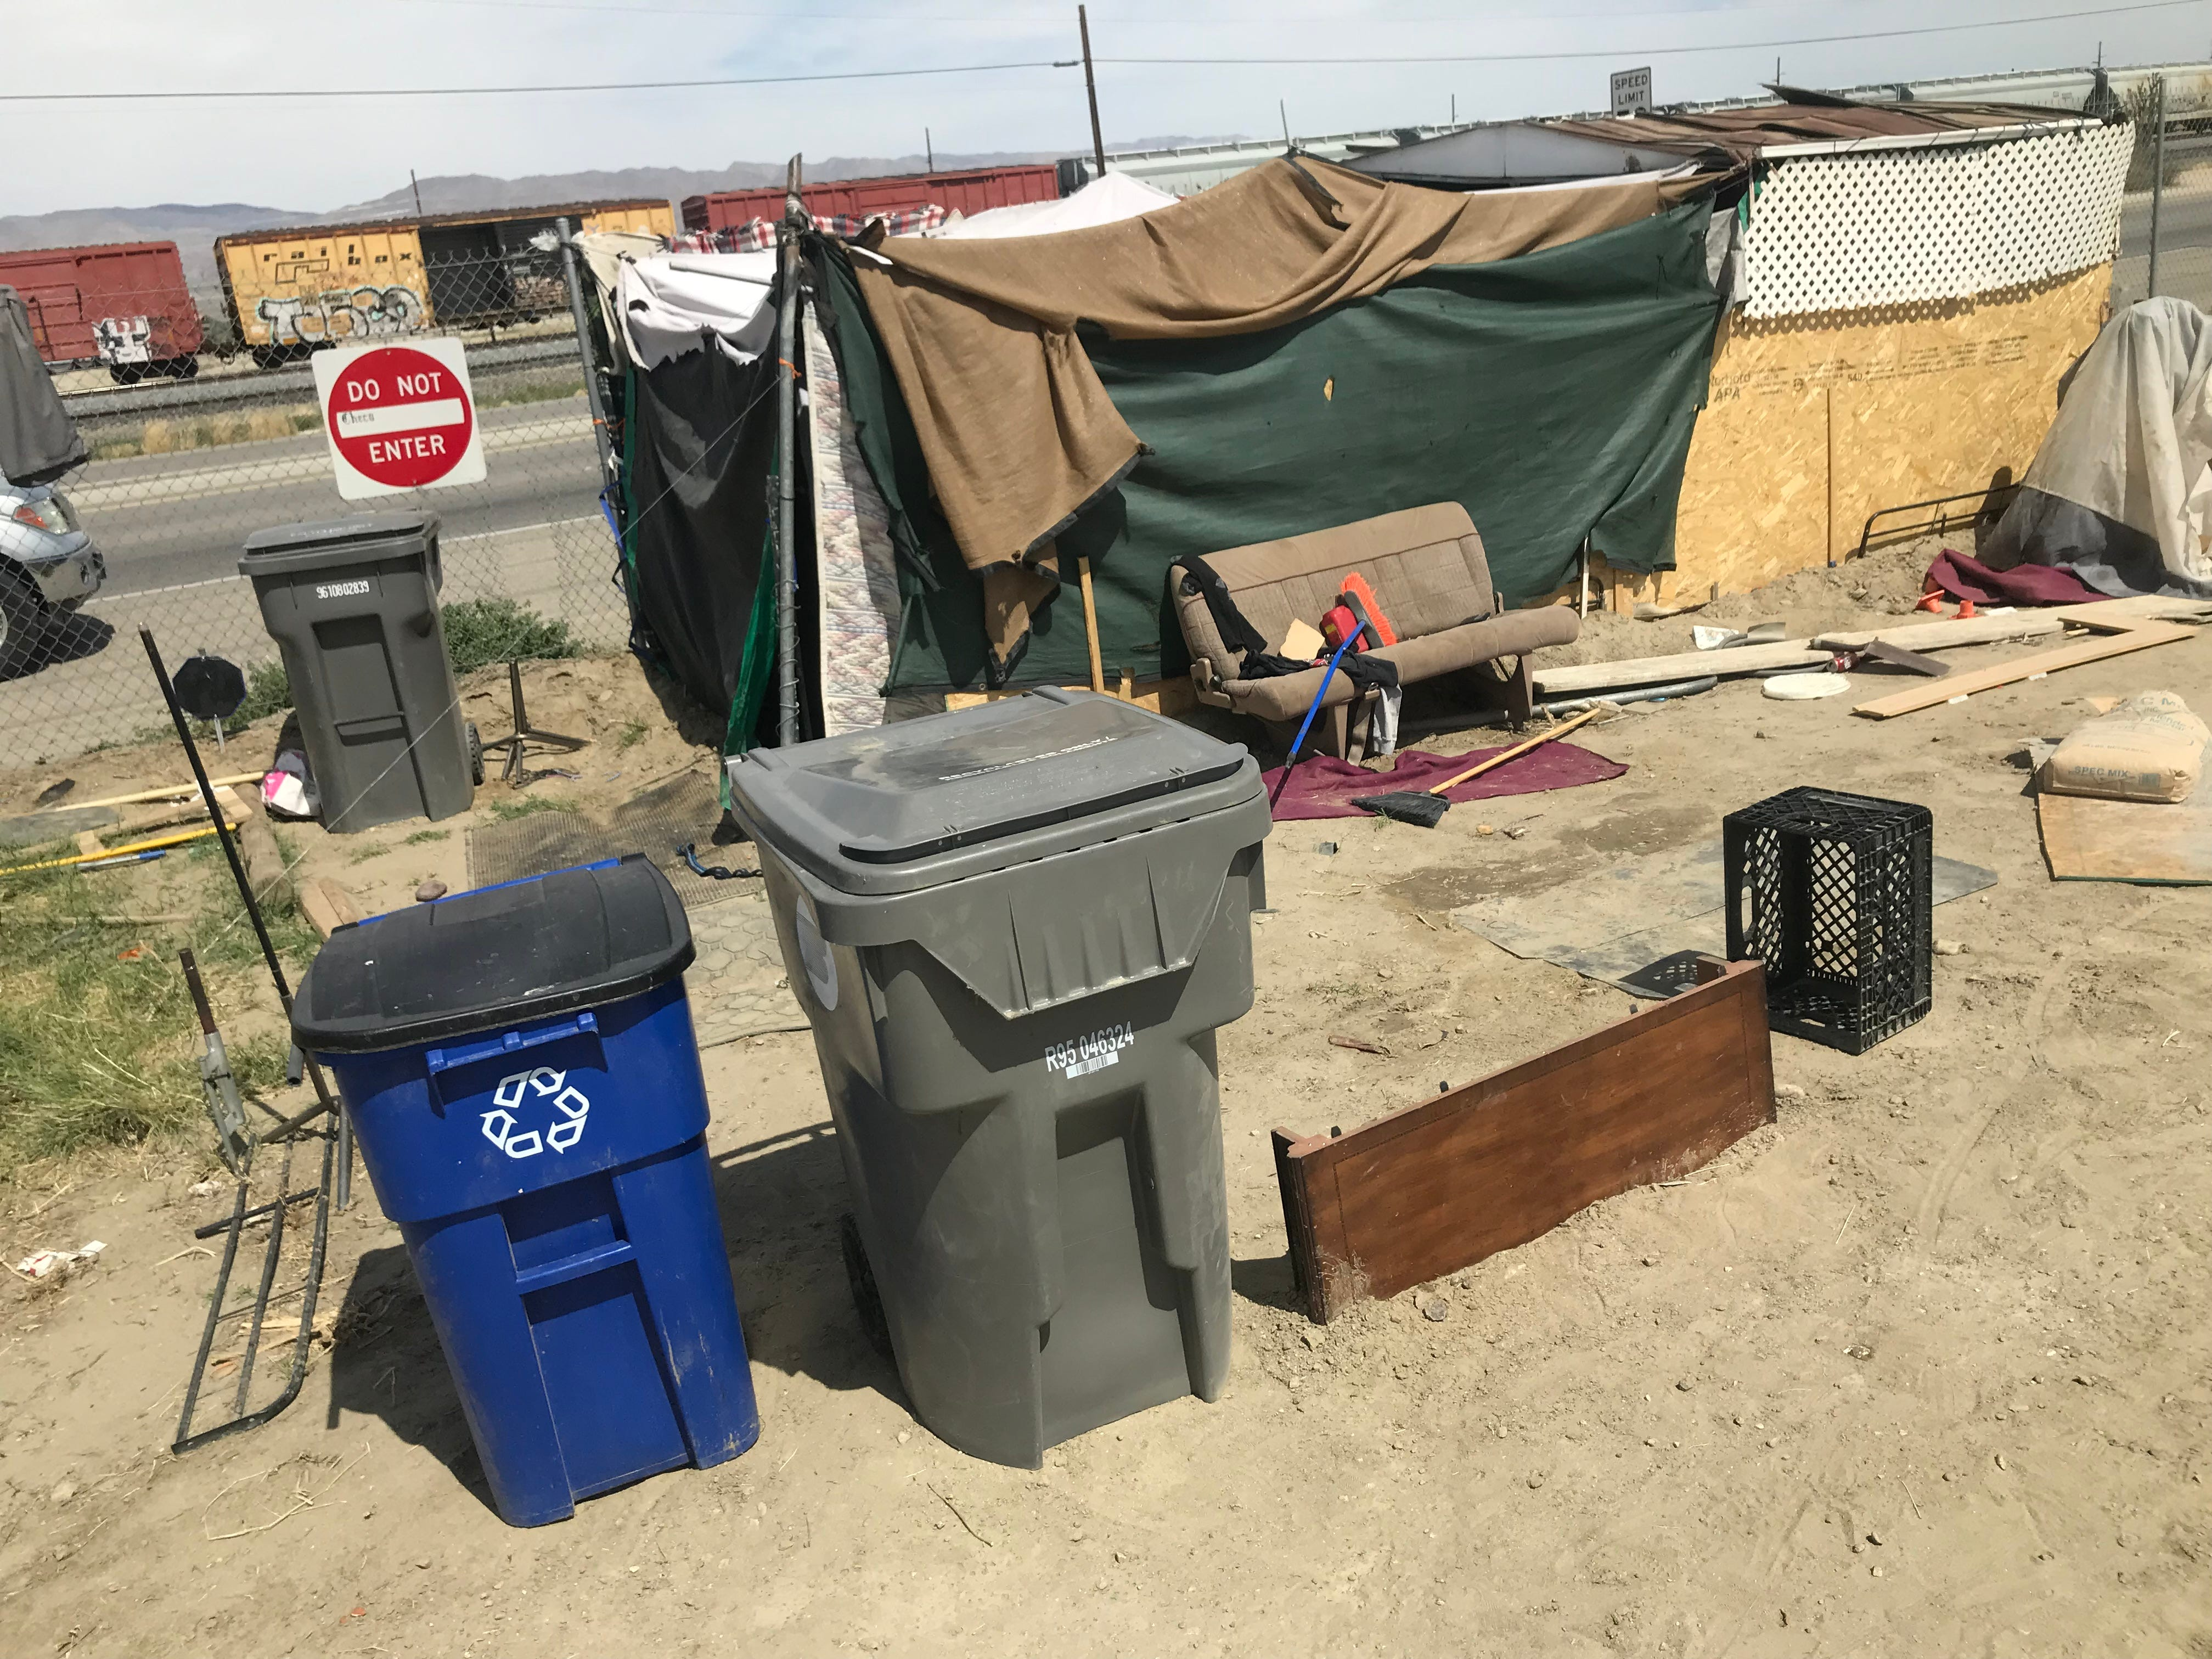 A hut on the site of the One Stop Shoppe encampment in Indio.